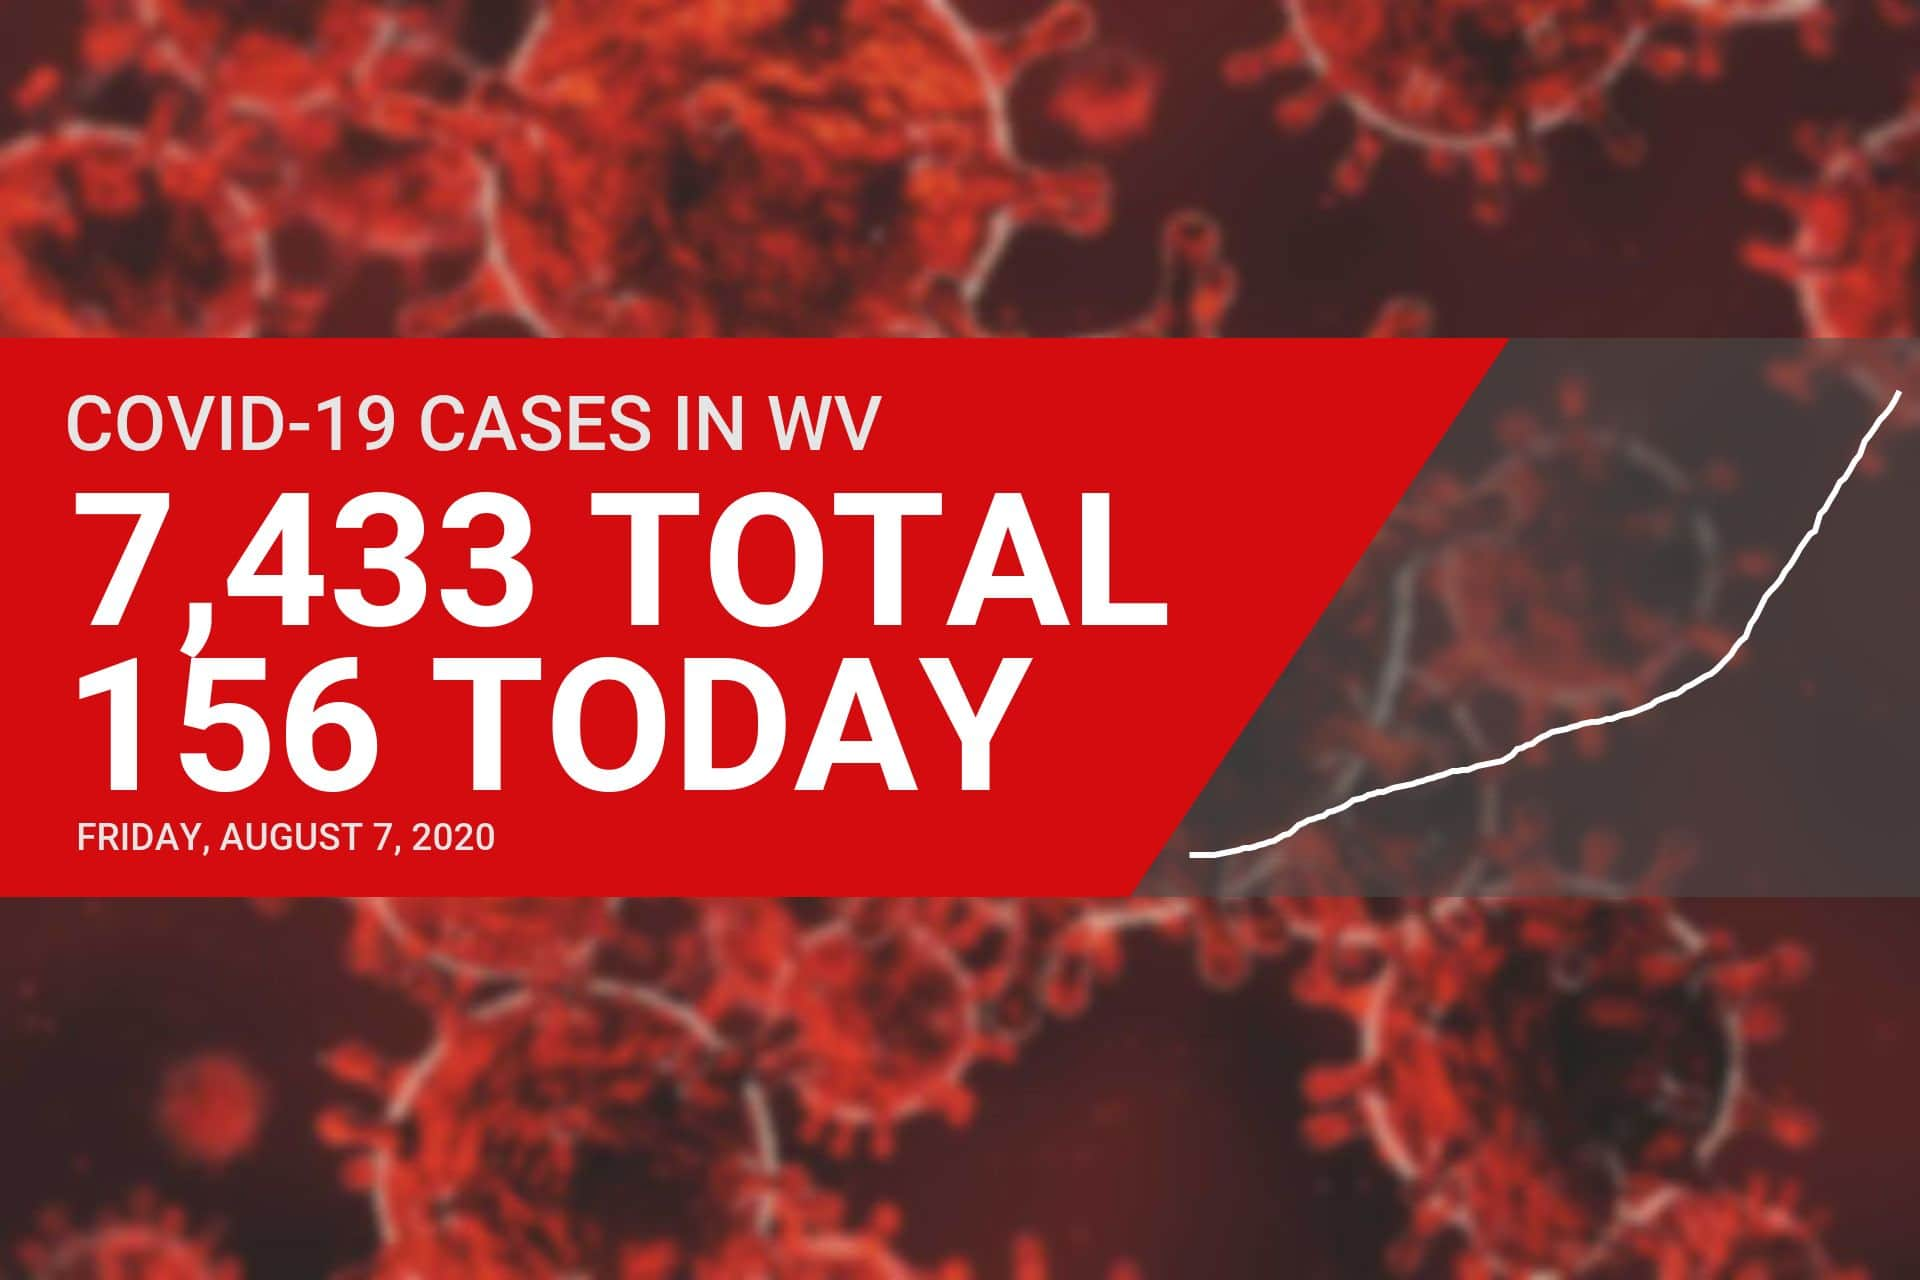 Three deaths, 156 new cases of COVID-19 reported in West Virginia on Friday